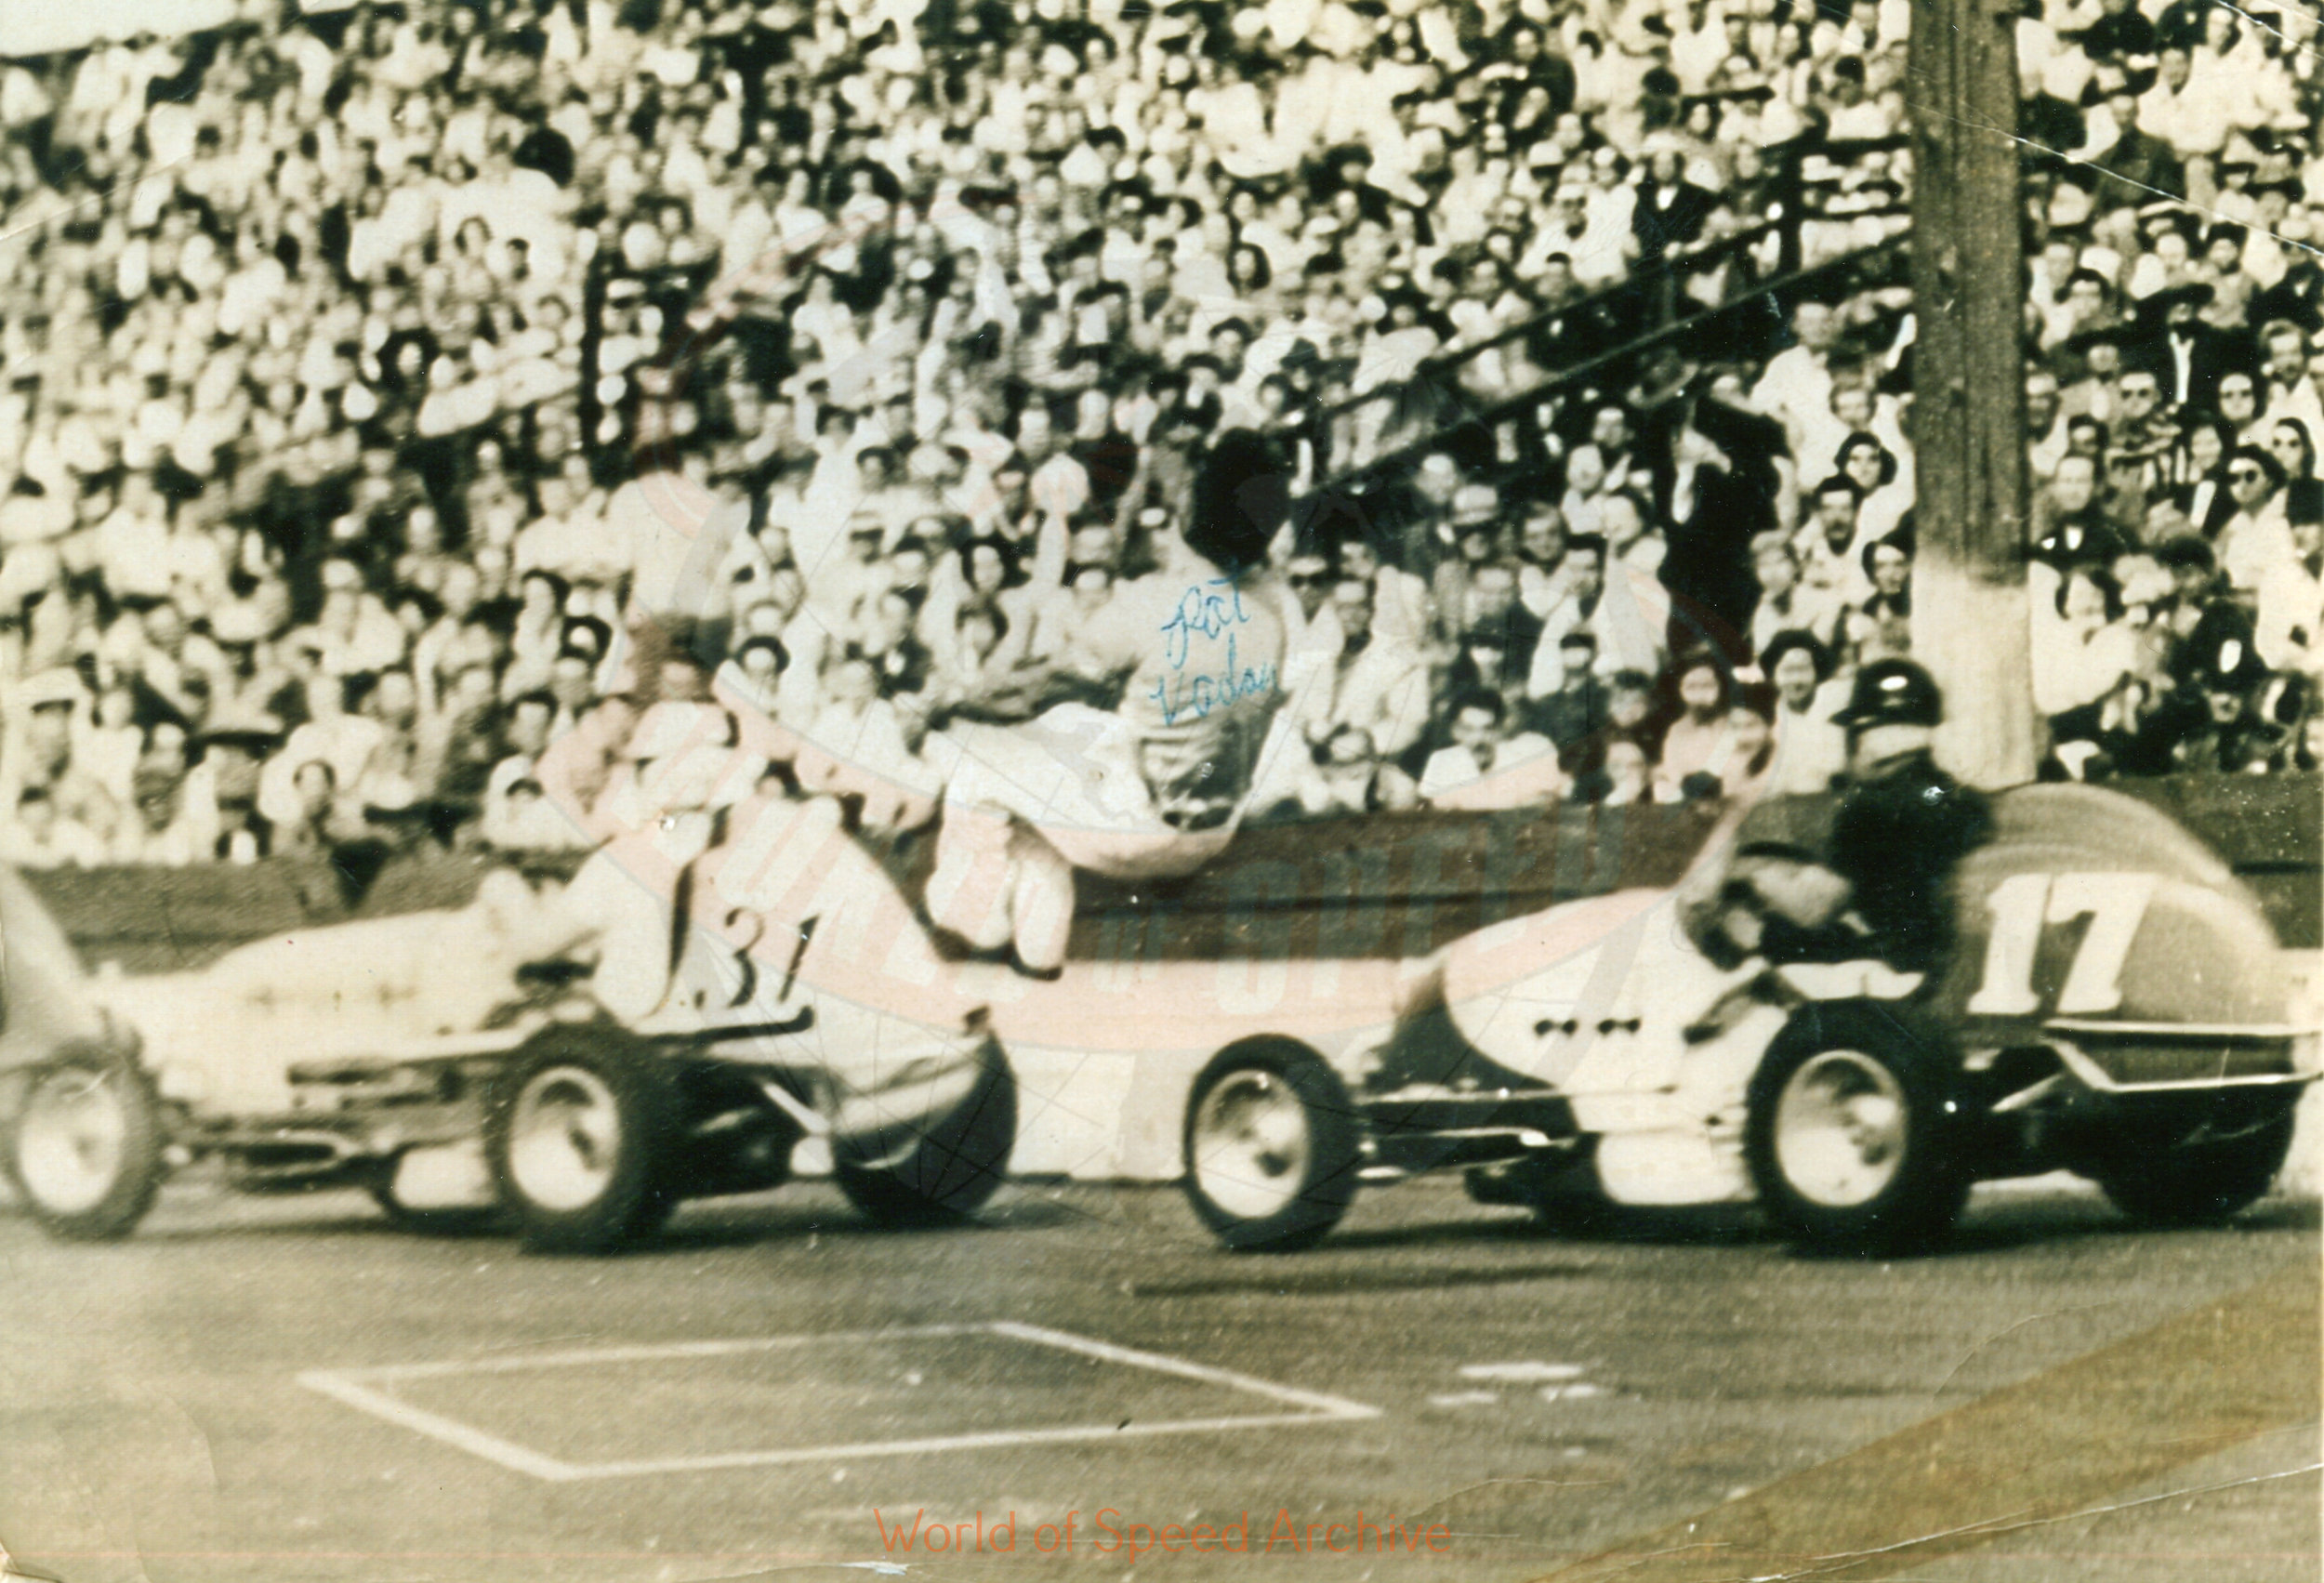 Hildick Photo Collection WOS#5072, BH024  Received submission:  #31 Chuck Tontz (owner Norm Zaayer), #17 Gordy Youngstrom (owner Wes Beck), 1952, Jantzen Beach, Pat Vidan Flagman [in the air]